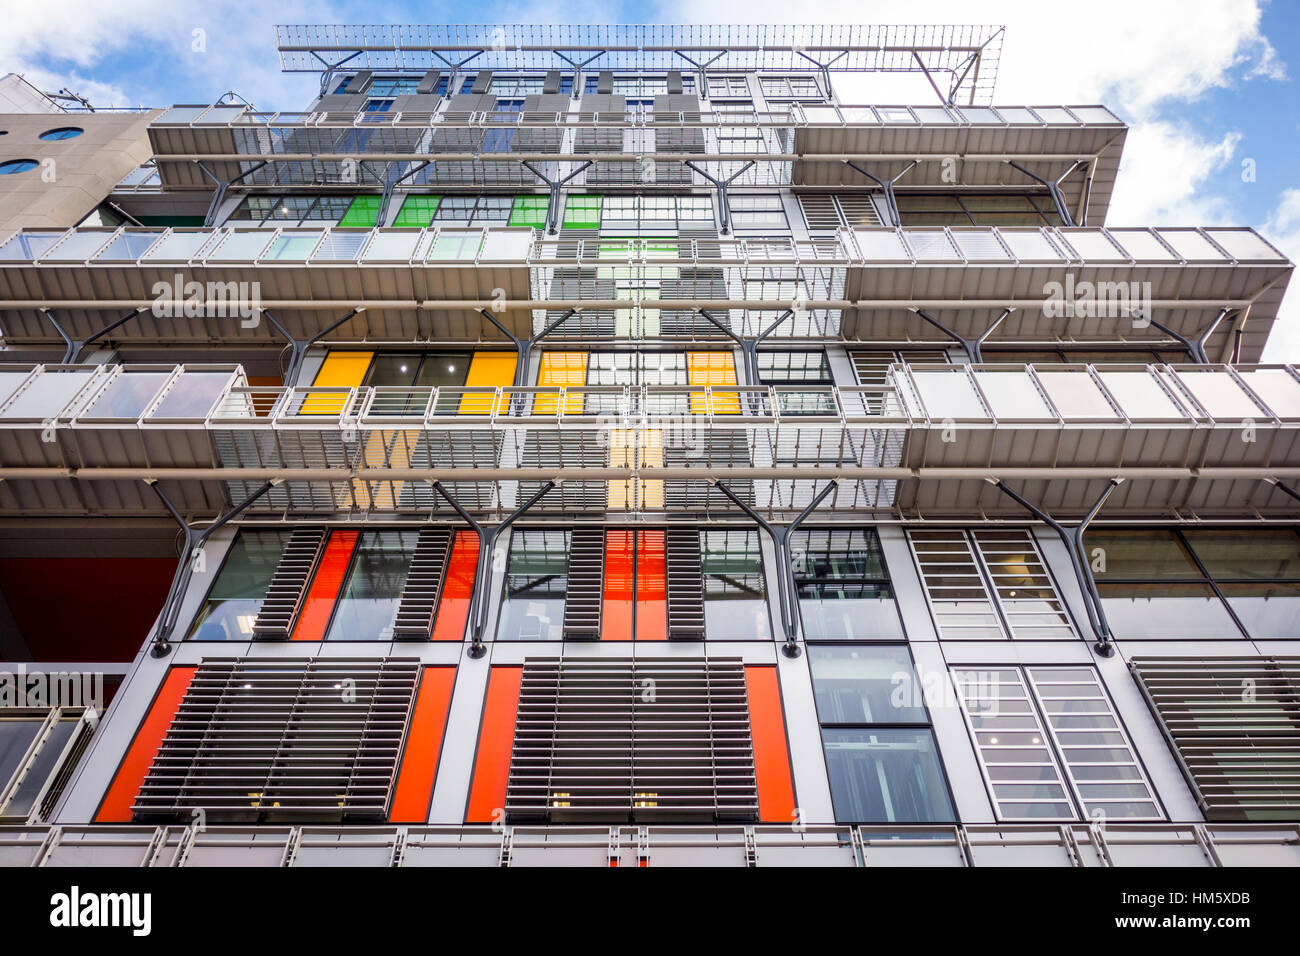 Guy's Cancer Center building, Guy's and St Thomas' Hospital, Londres, Royaume-Uni Photo Stock